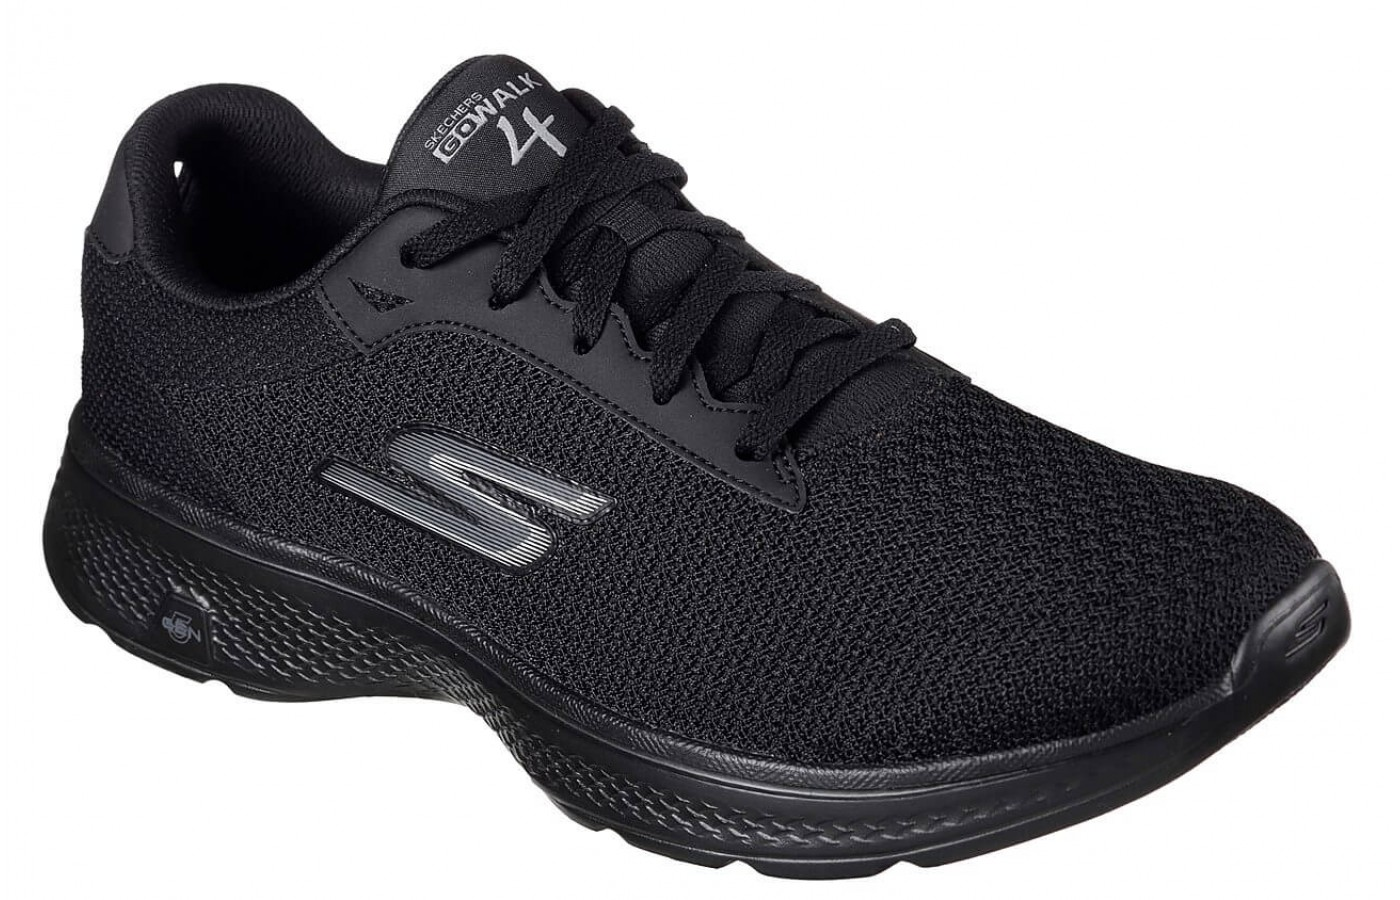 An angled view of the Skechers GOwalk 4.